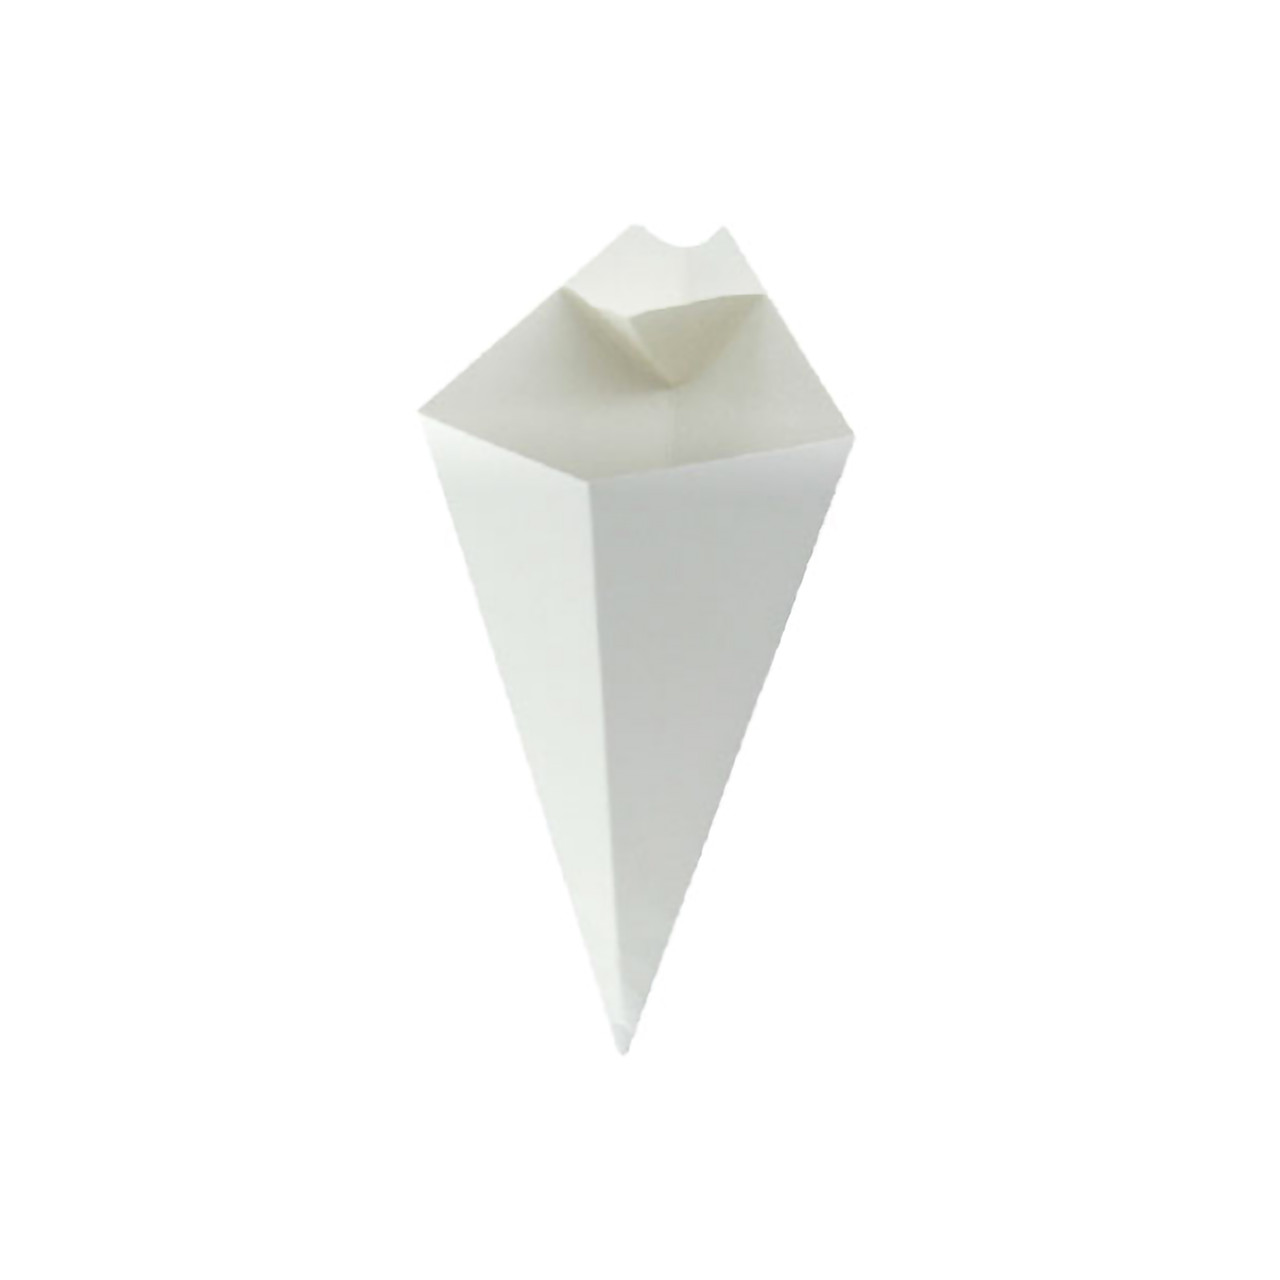 White Paper Cones With Built In Dipping Sauce Compartment -5oz L:7.6 in